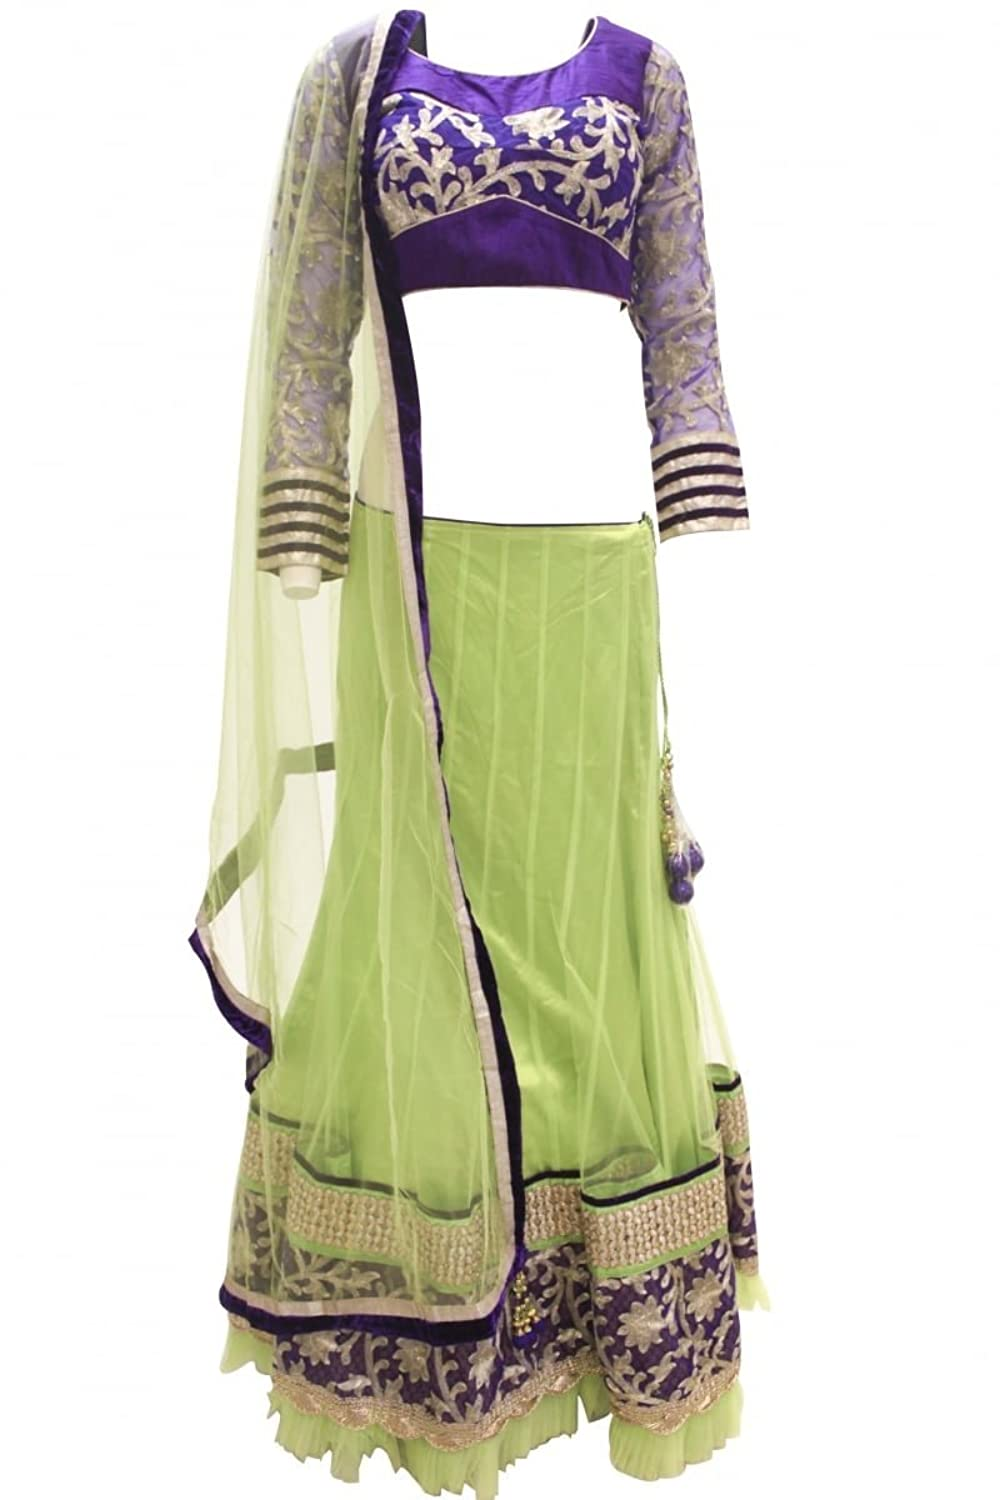 DCC2363 Light Green and Indigo Traditional Chaniya Choli Indian Bollywood Lengha Choli